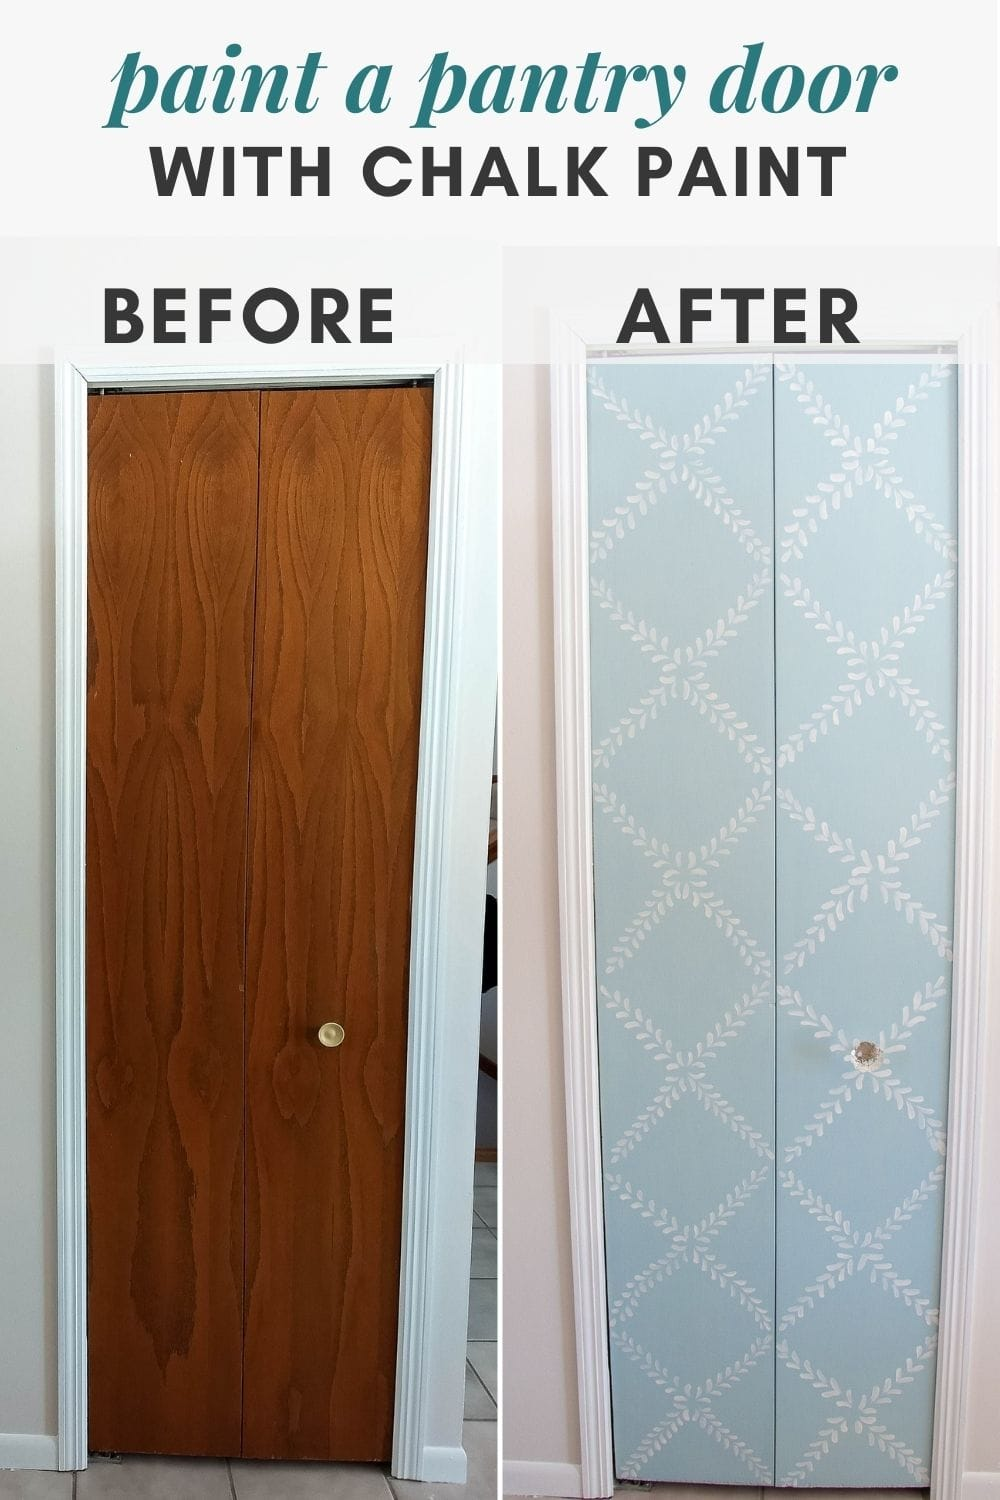 """Before and after of a chalk-painted pantry door with the words, """"paint a pantry door with chalk paint""""."""